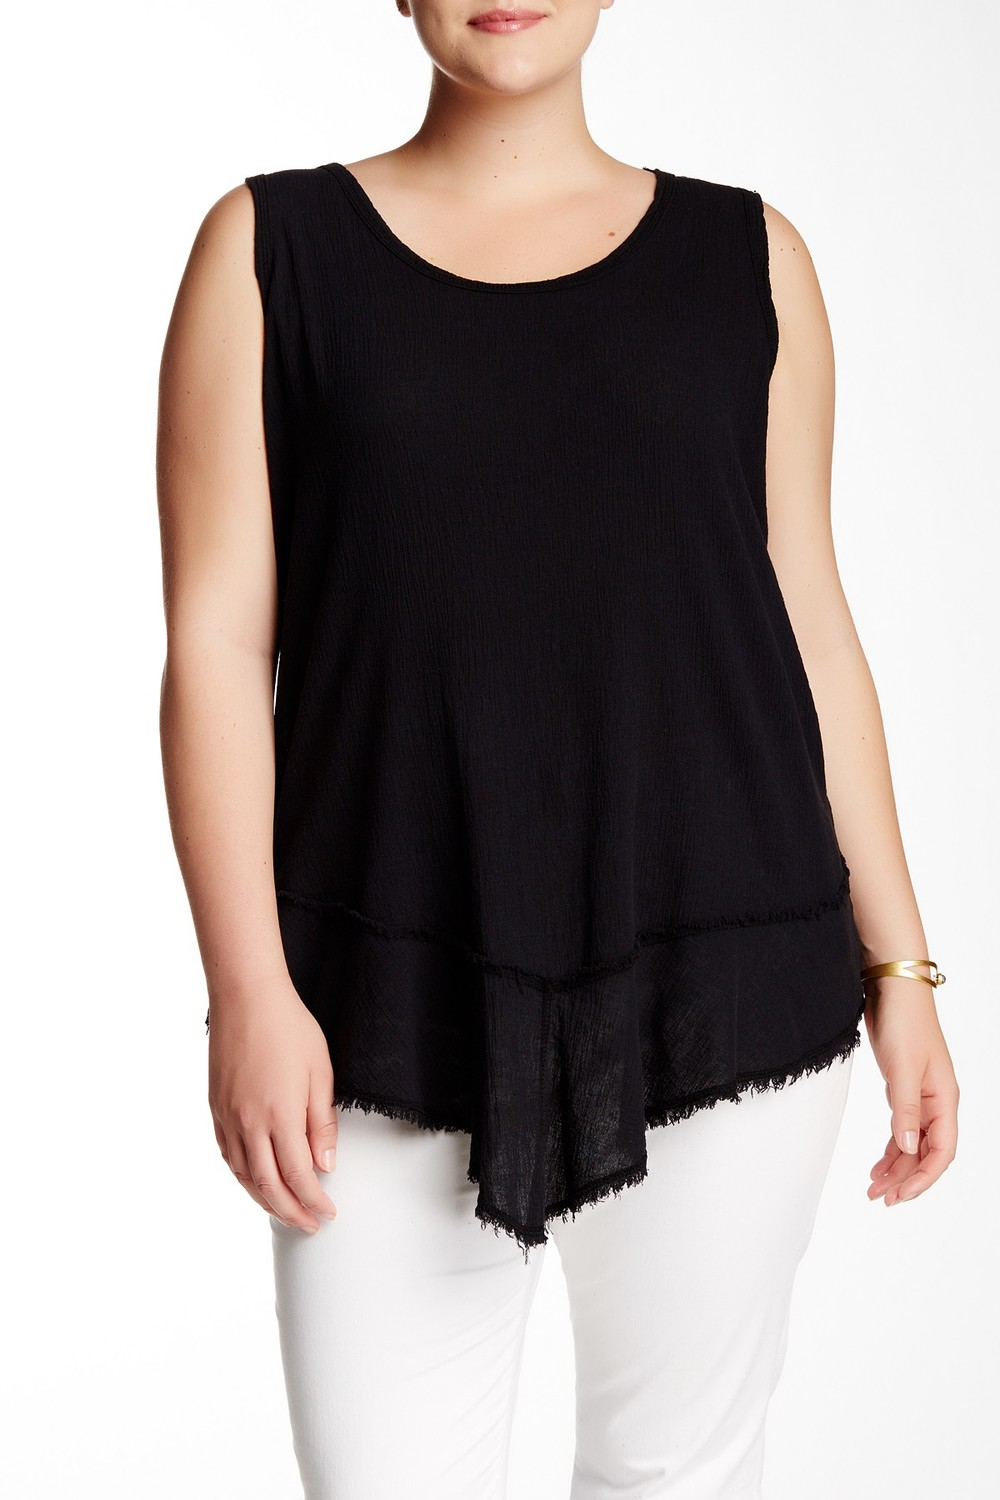 Able Gauze Tank. Nordstrom Rack. Available in black, purple. Was: $68 Now: $26. (cotton)